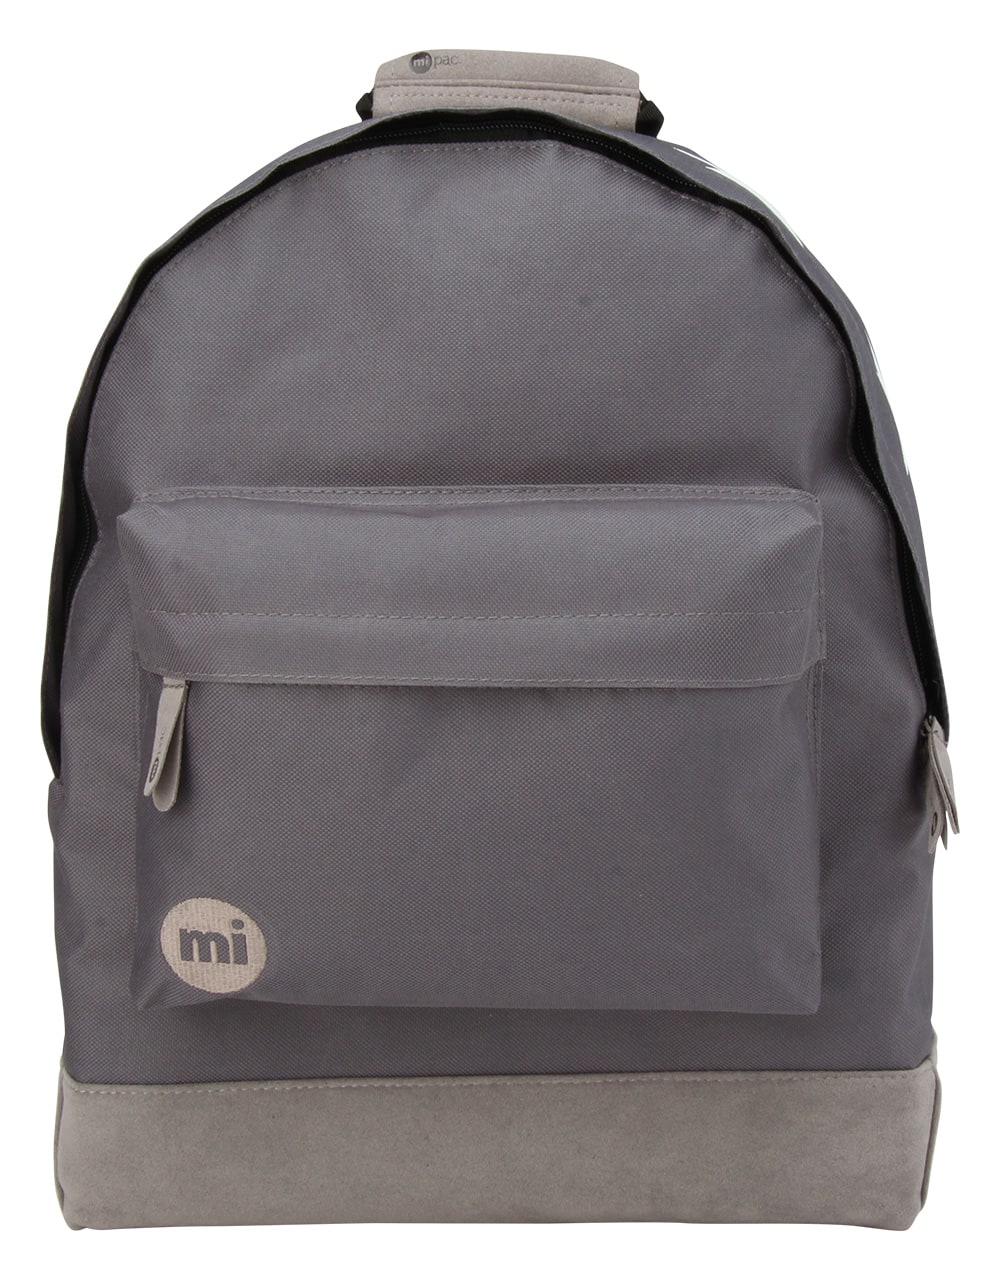 MiPac Topstars Backpack  Charcoal